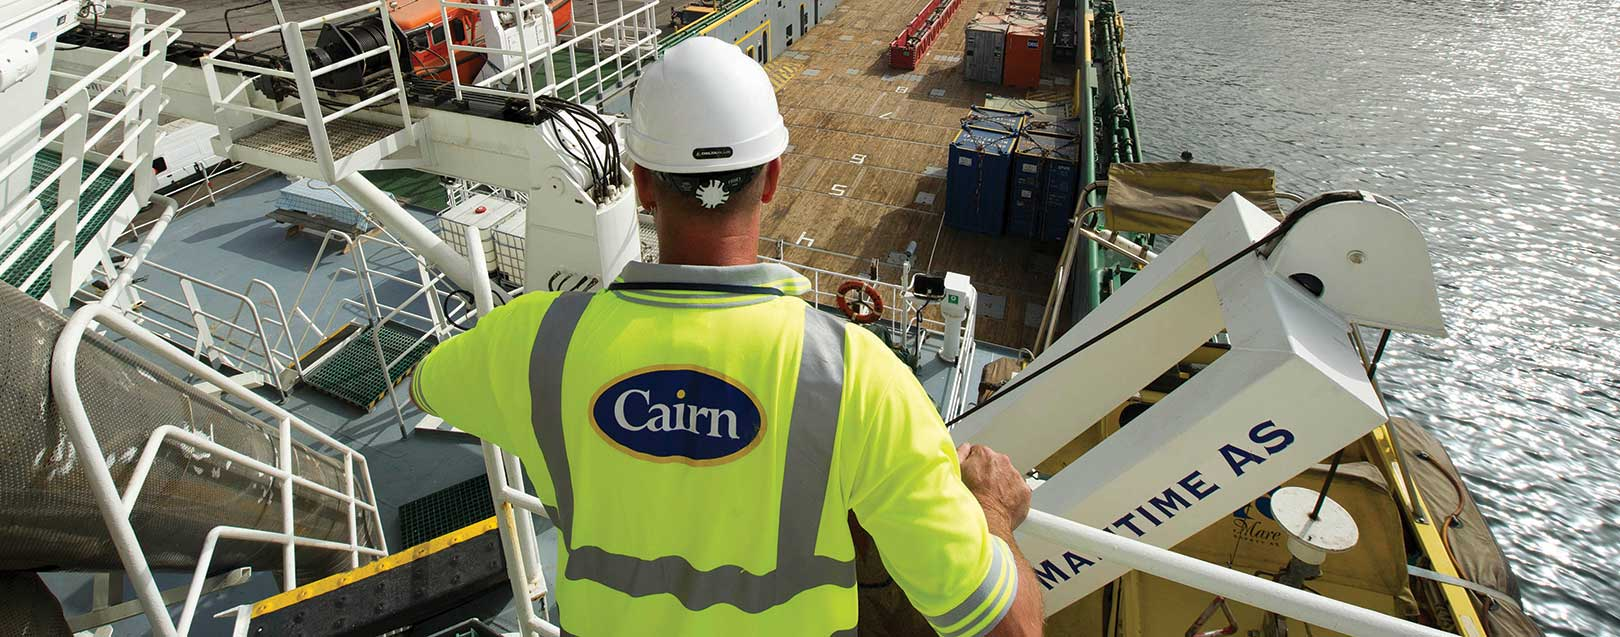 Setback to India, intl panel rejects stay on Cairn arbitration